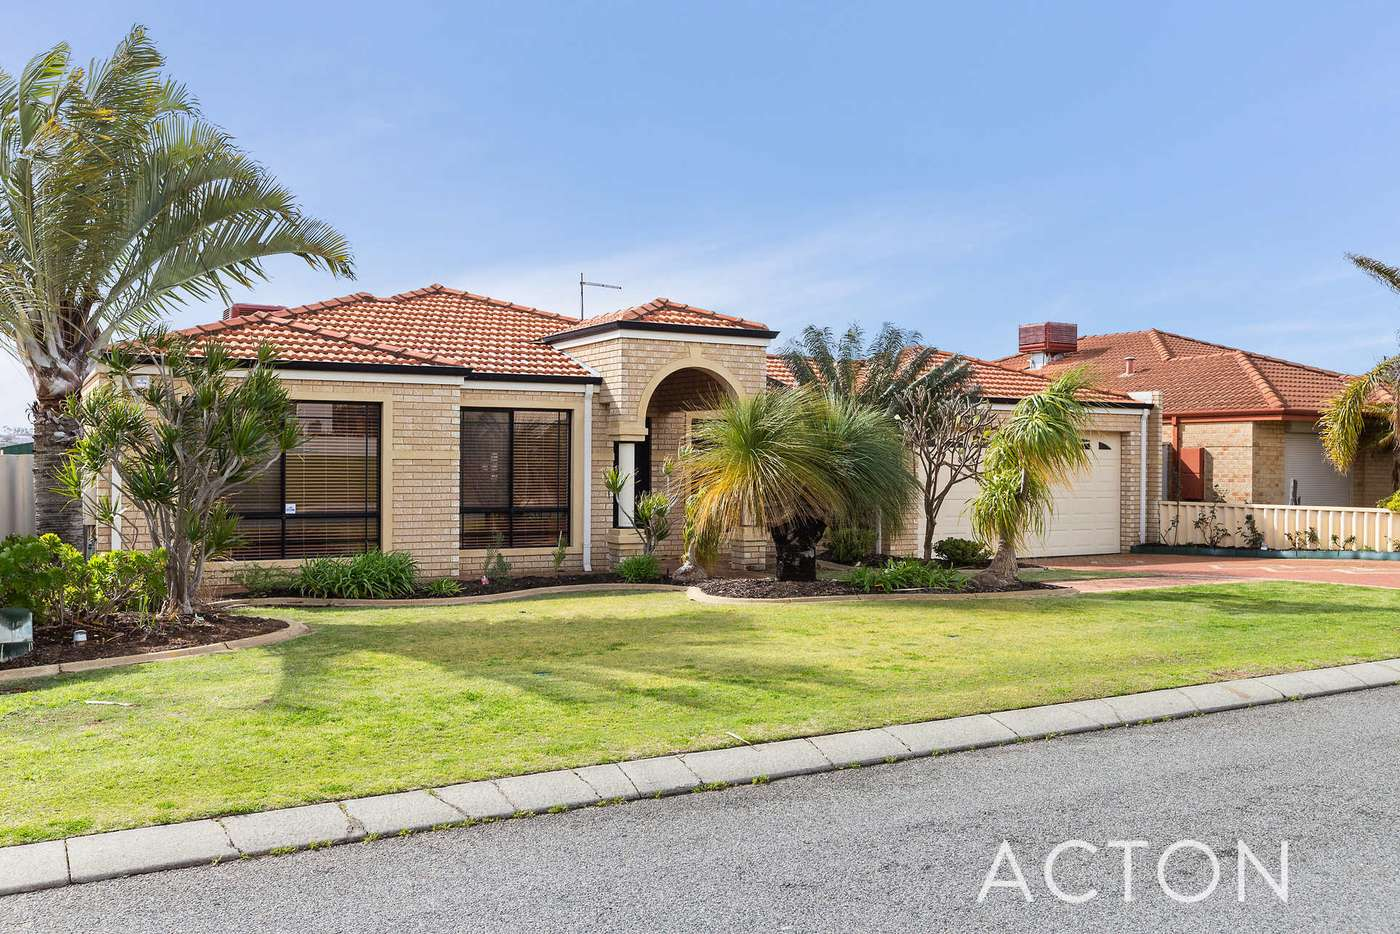 Main view of Homely house listing, 3 Luttrell Gardens, Beeliar WA 6164